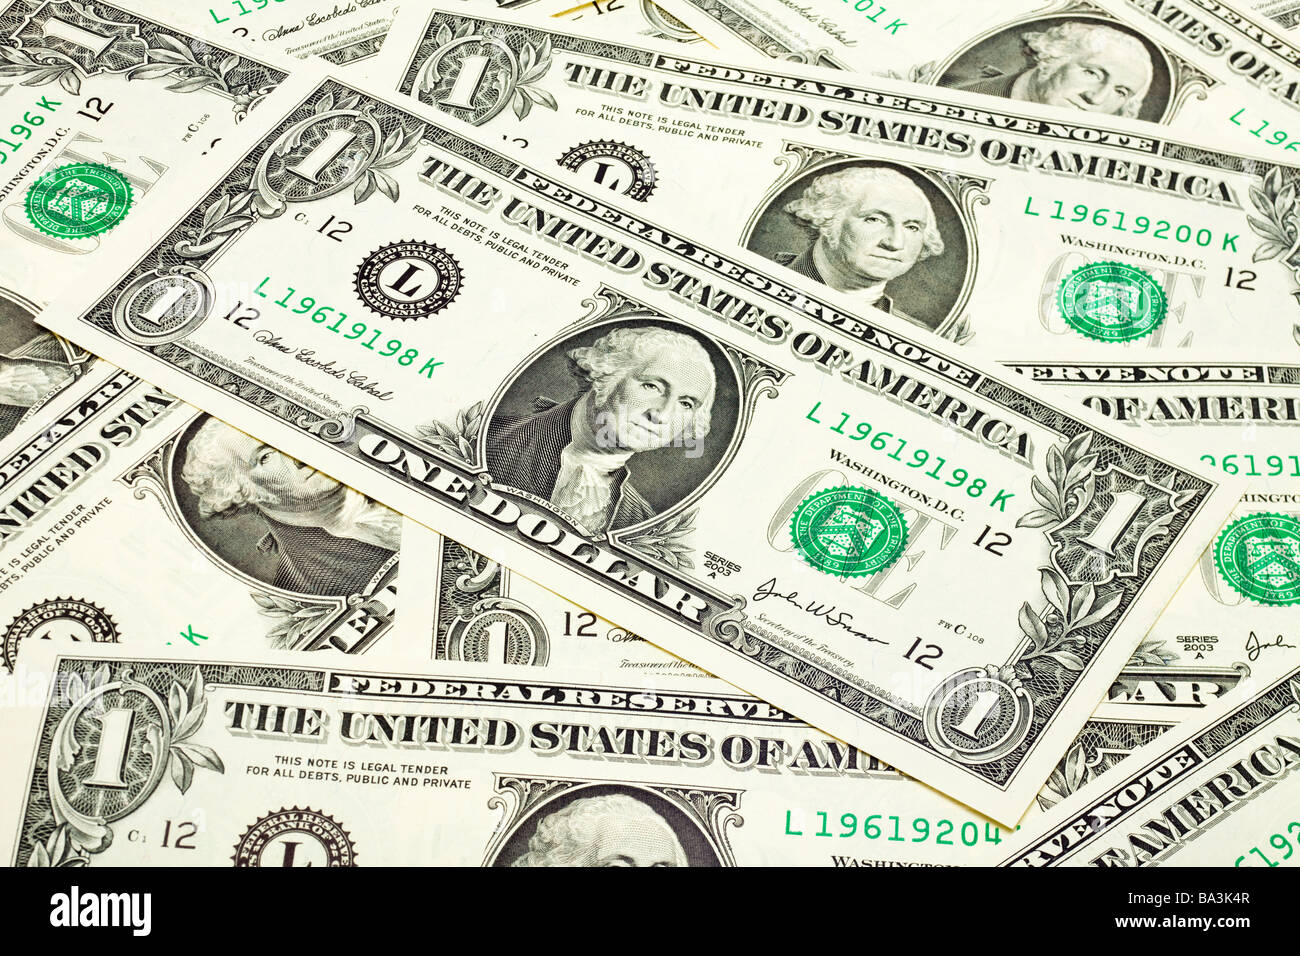 Group of US One Dollar bills laid flat close up - Stock Image